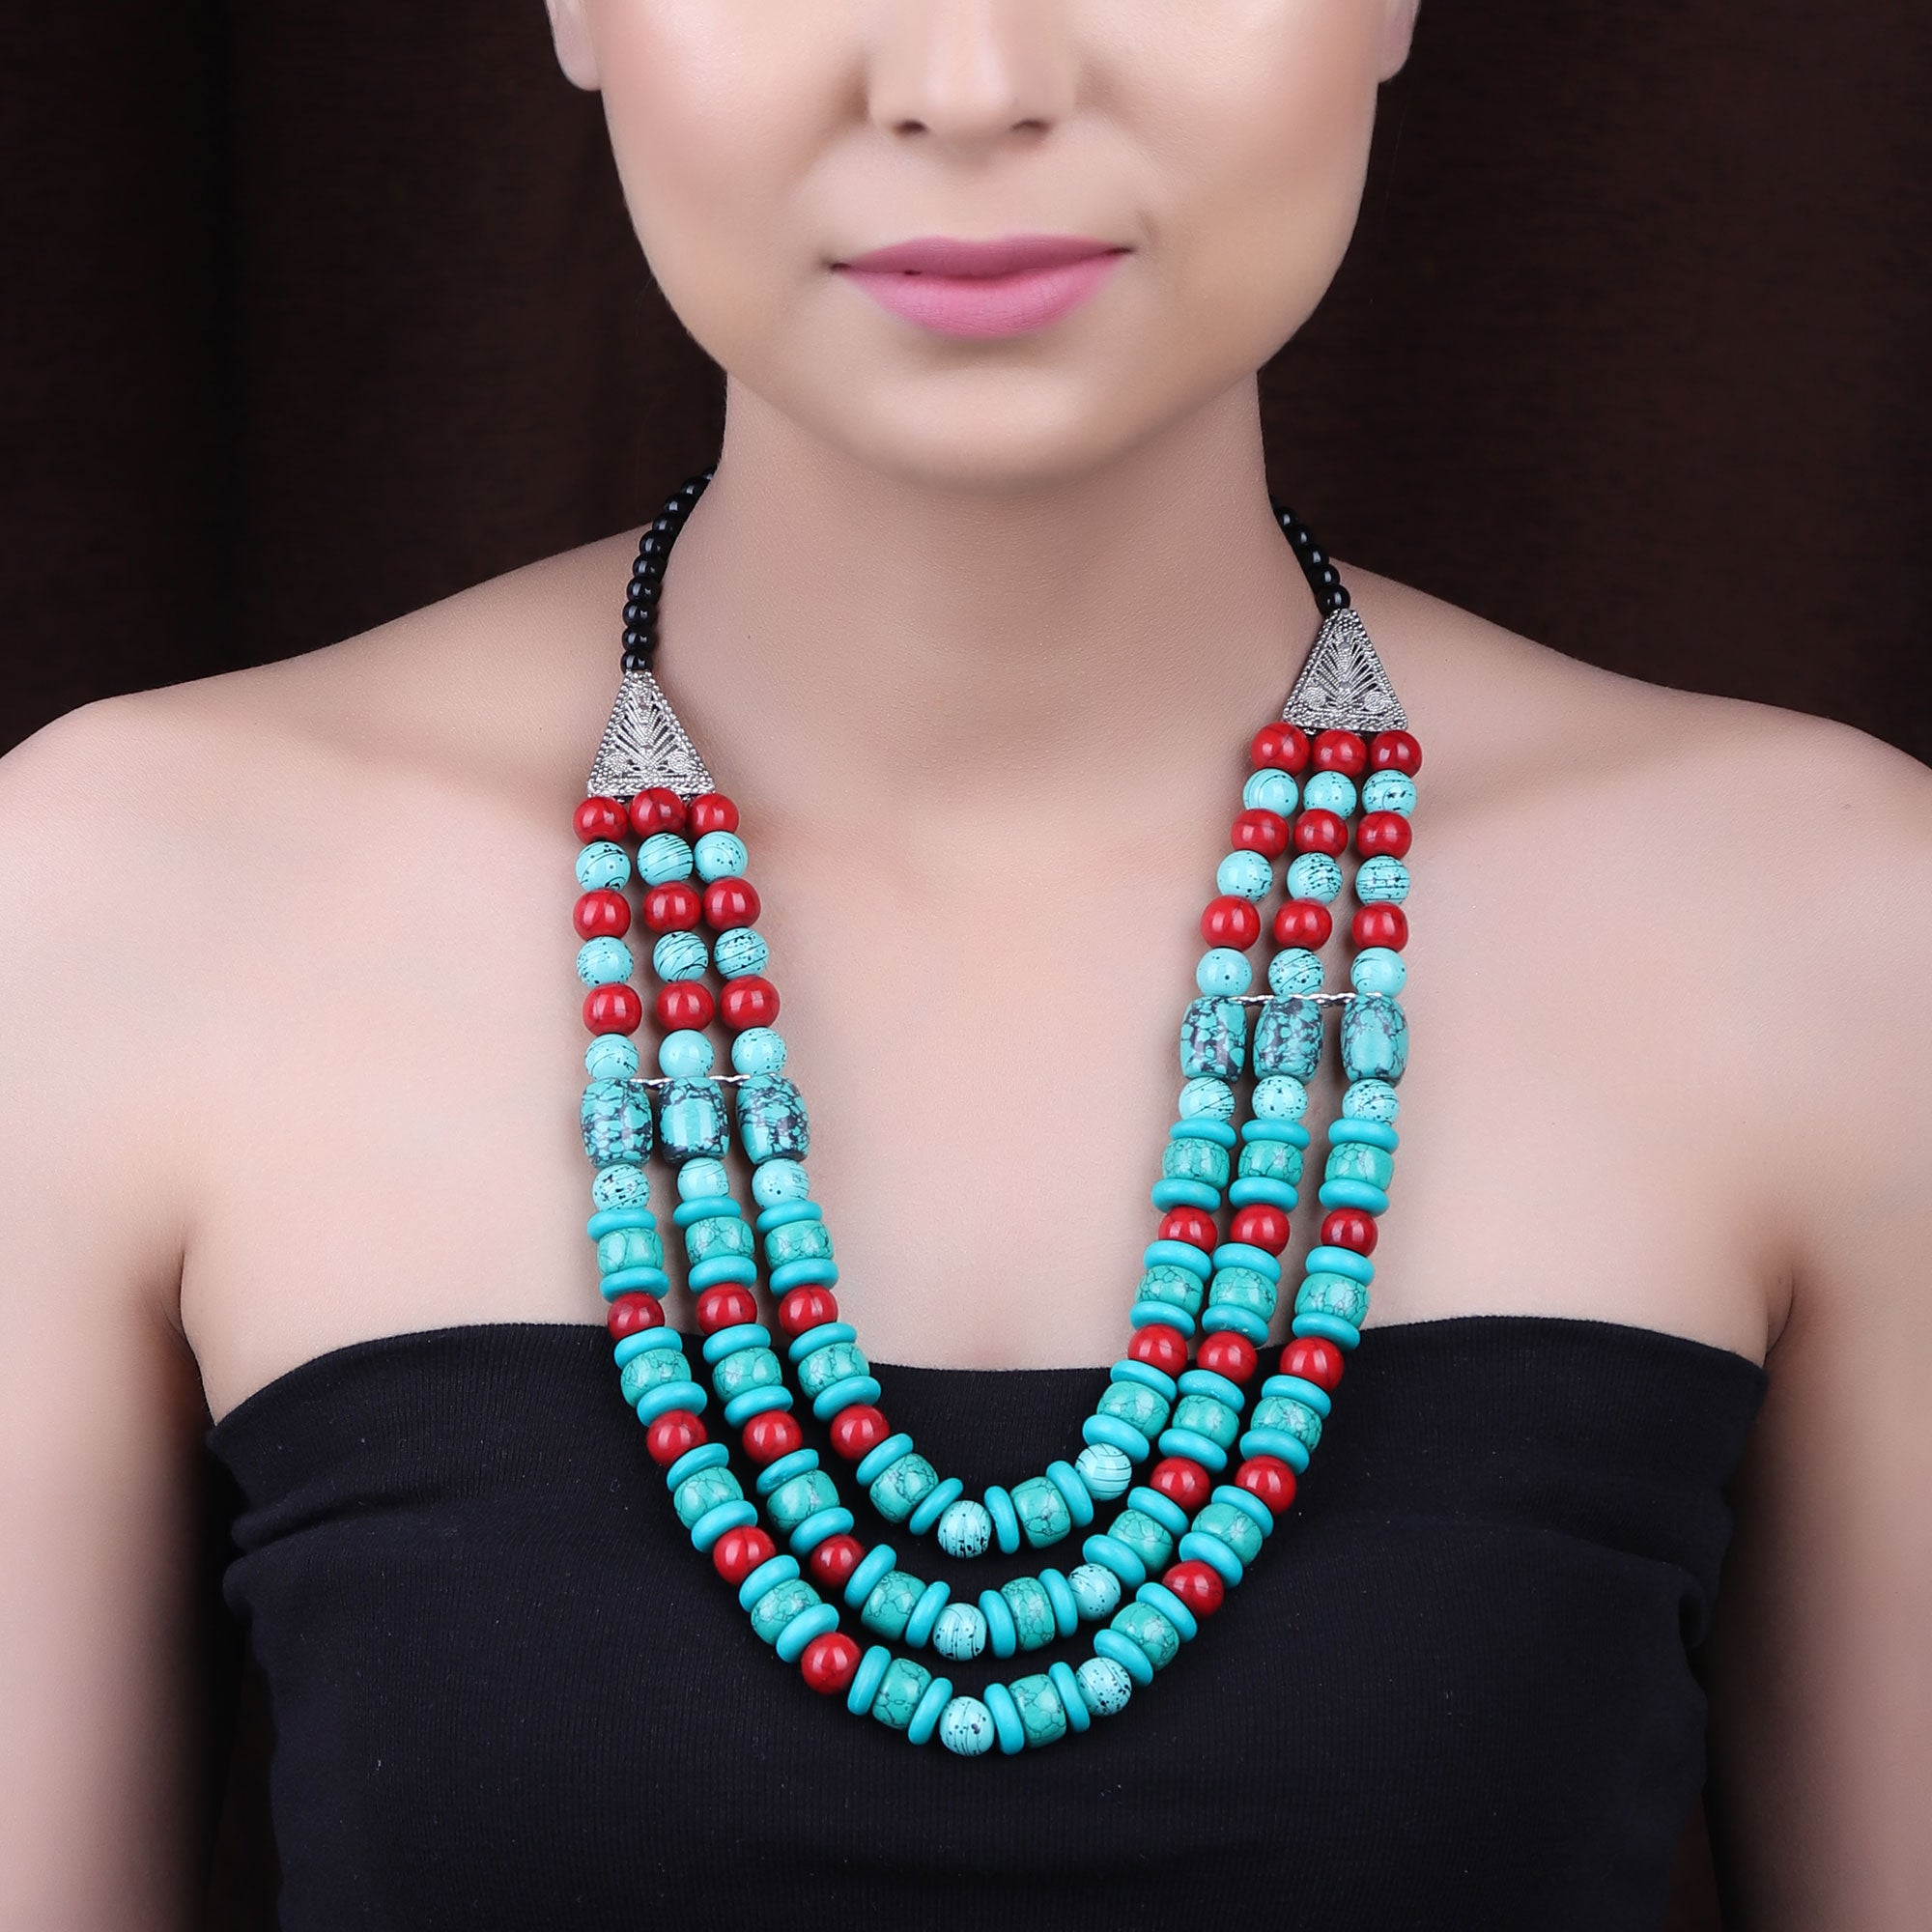 Necklace,The Geometry Layered Beaded Necklace in Green & Red - Cippele Multi Store